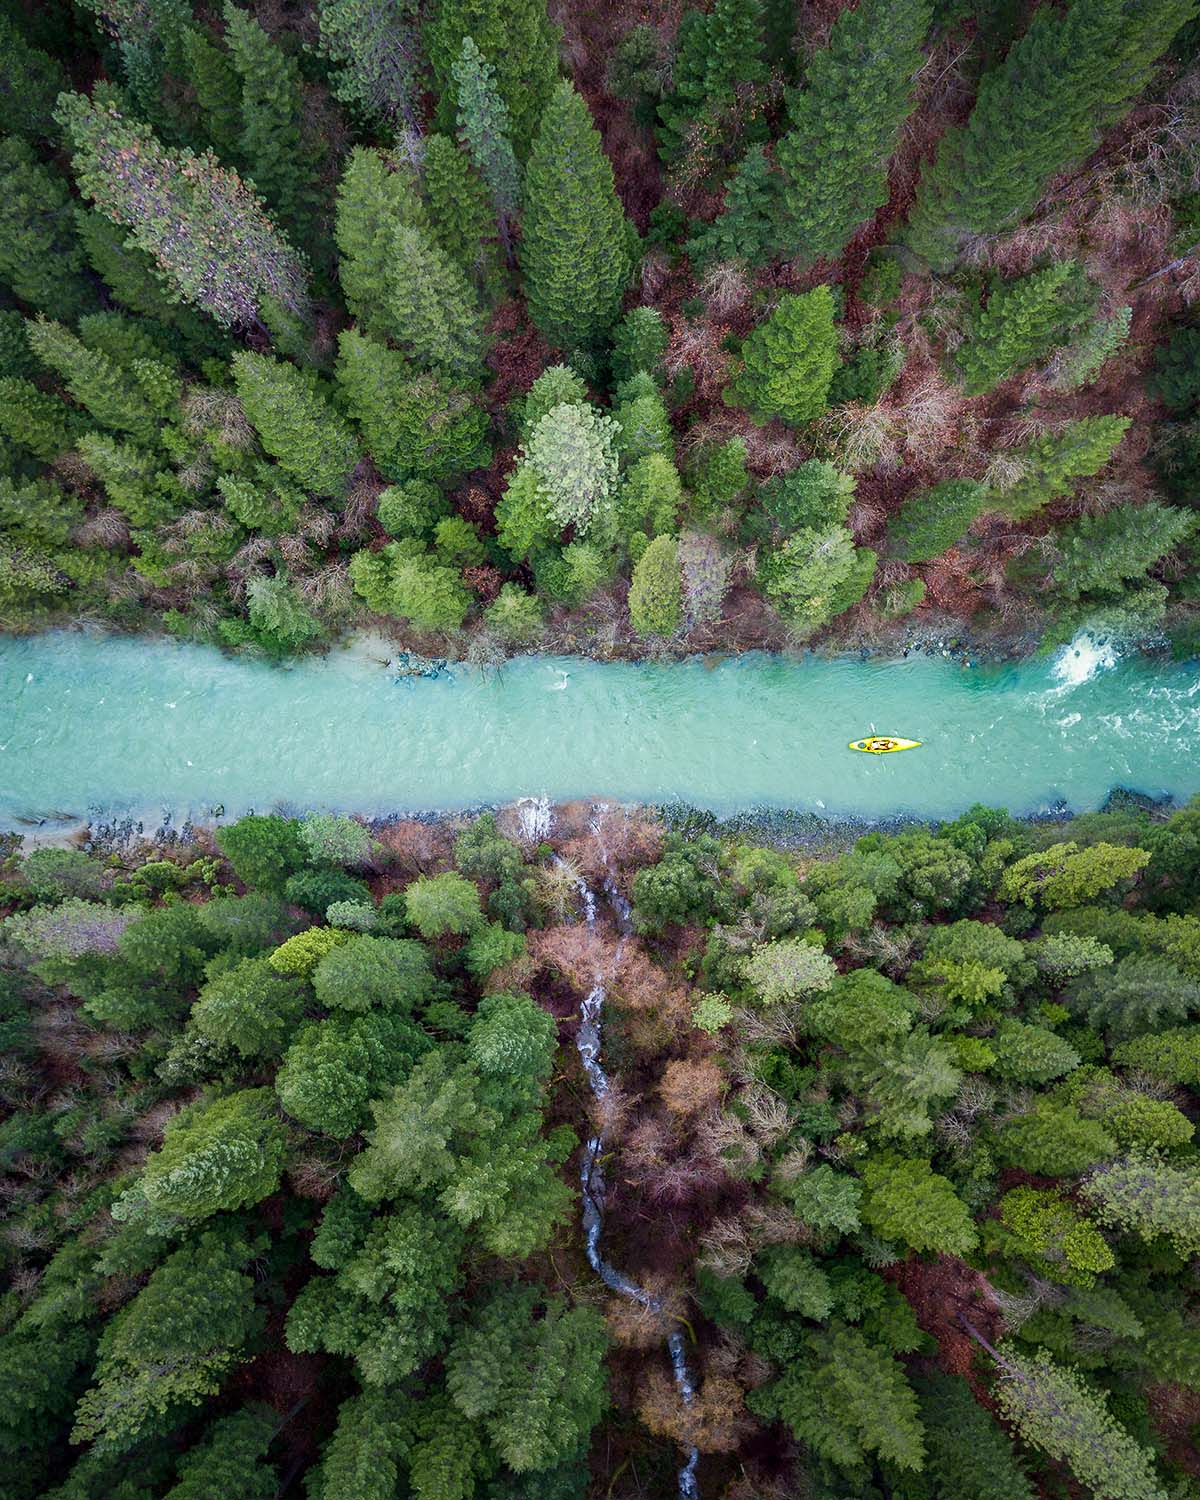 Aerial Images of Vibrant Landscapes by Photographer Niaz Uddin